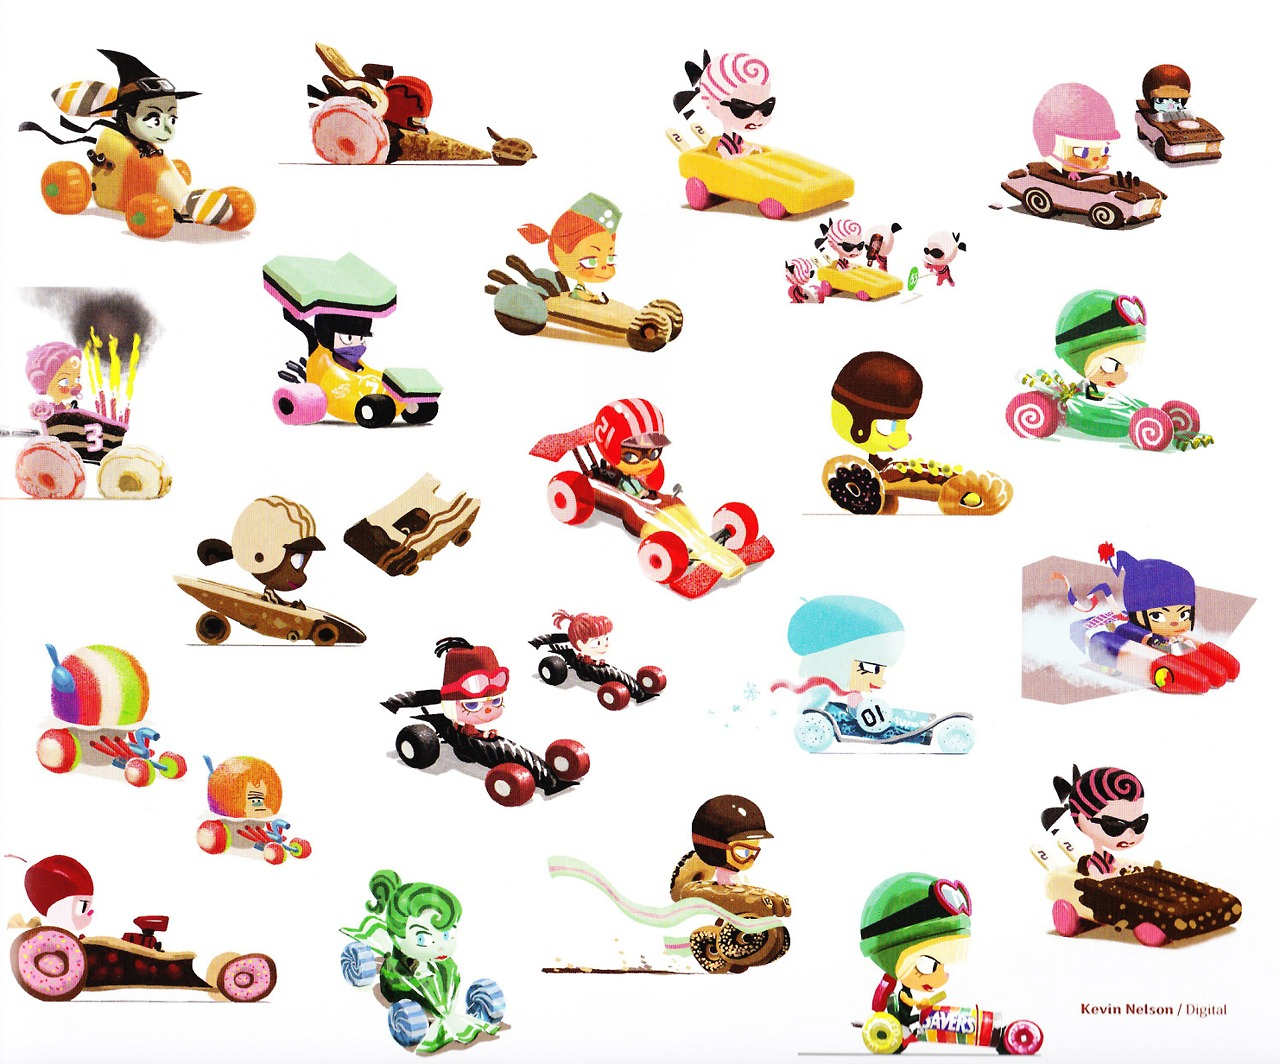 Toy Names A Z : Image sugar rush concept scrapped characters eg